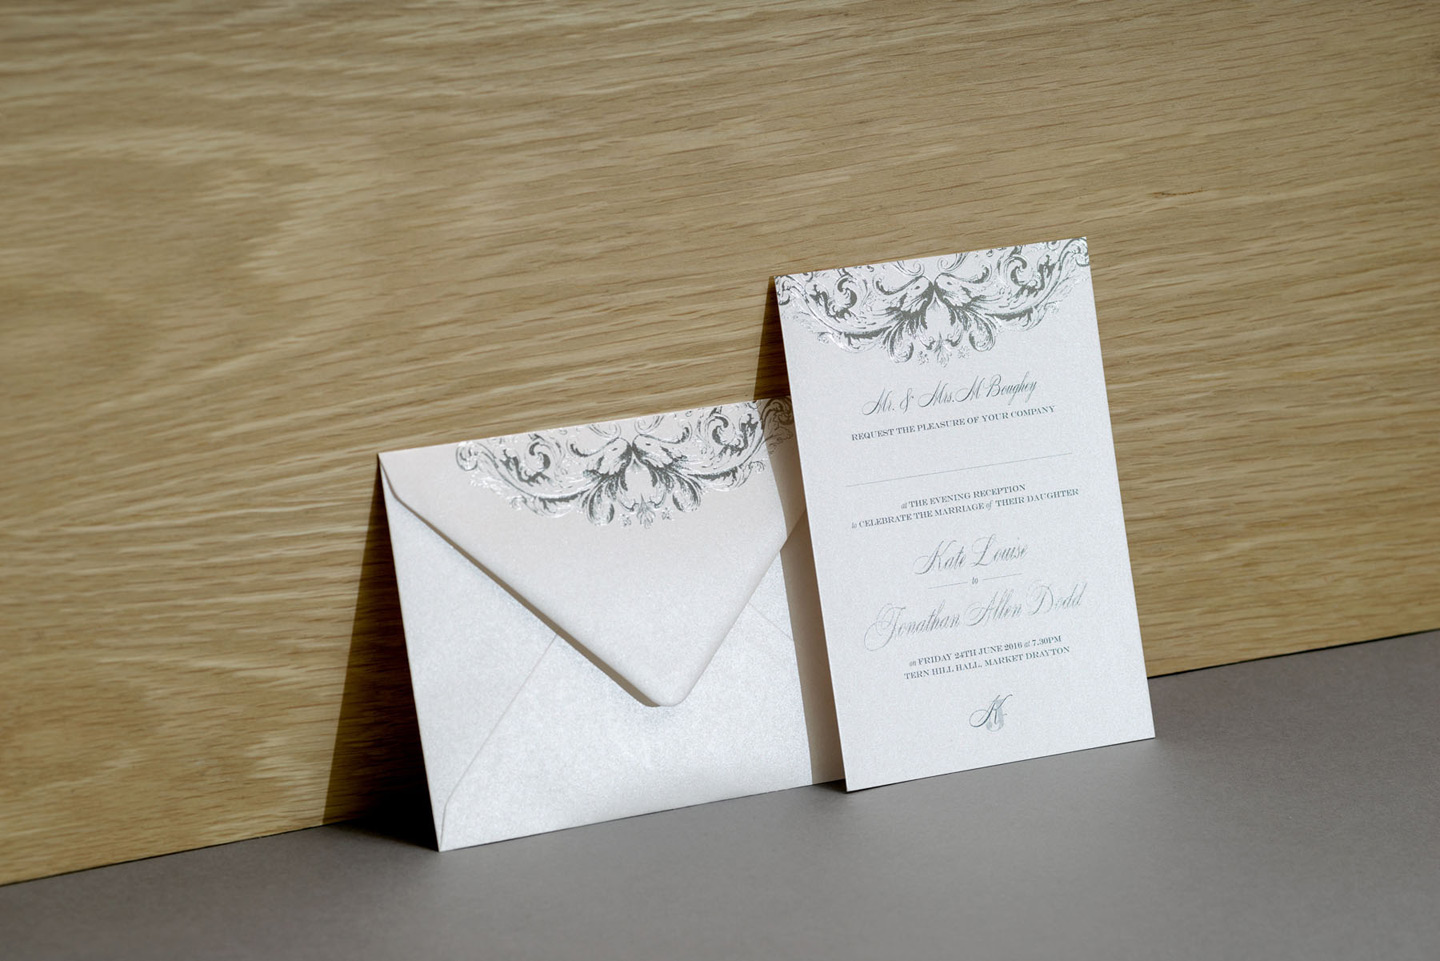 4 ideas to make your wedding invitation envelopes extra special